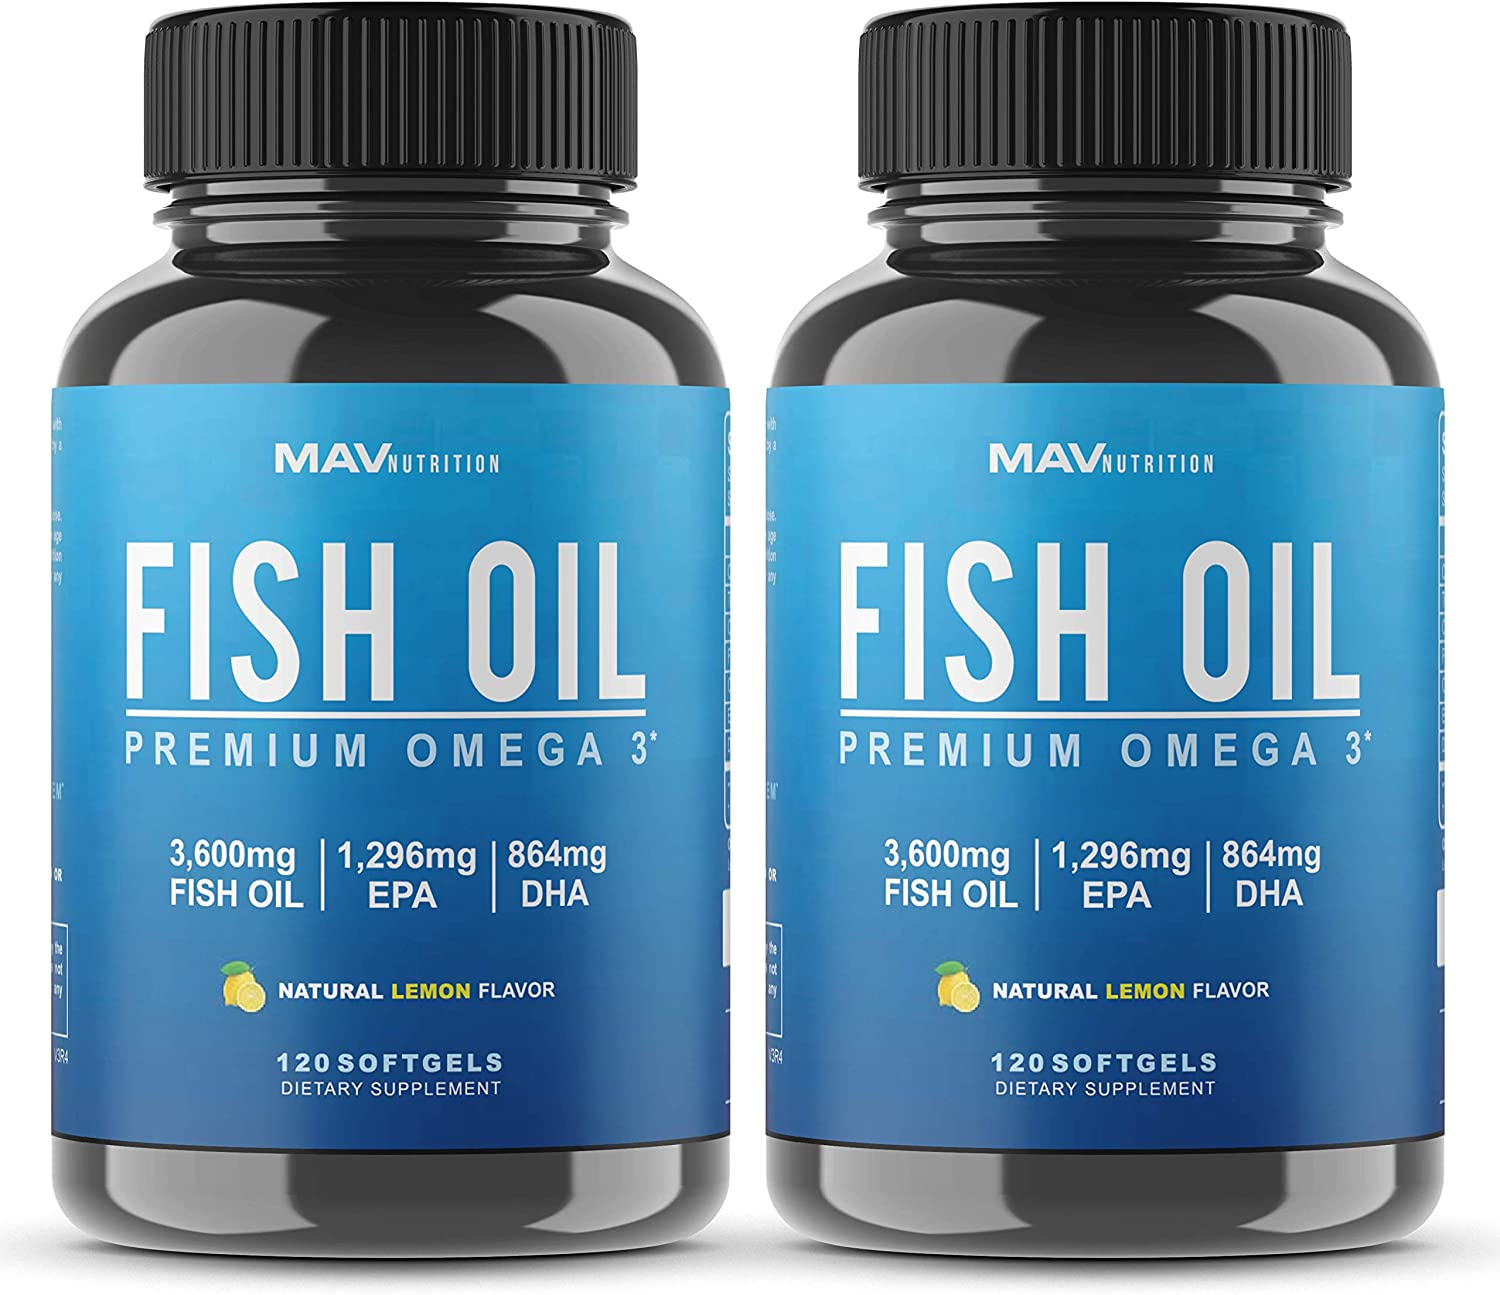 MAV Nutrition Omega 3 Fish Oil Triple Strength, 3,600mg, Burpless, Non-GMO, NSF-Certified, 120 Count (2 Pack)